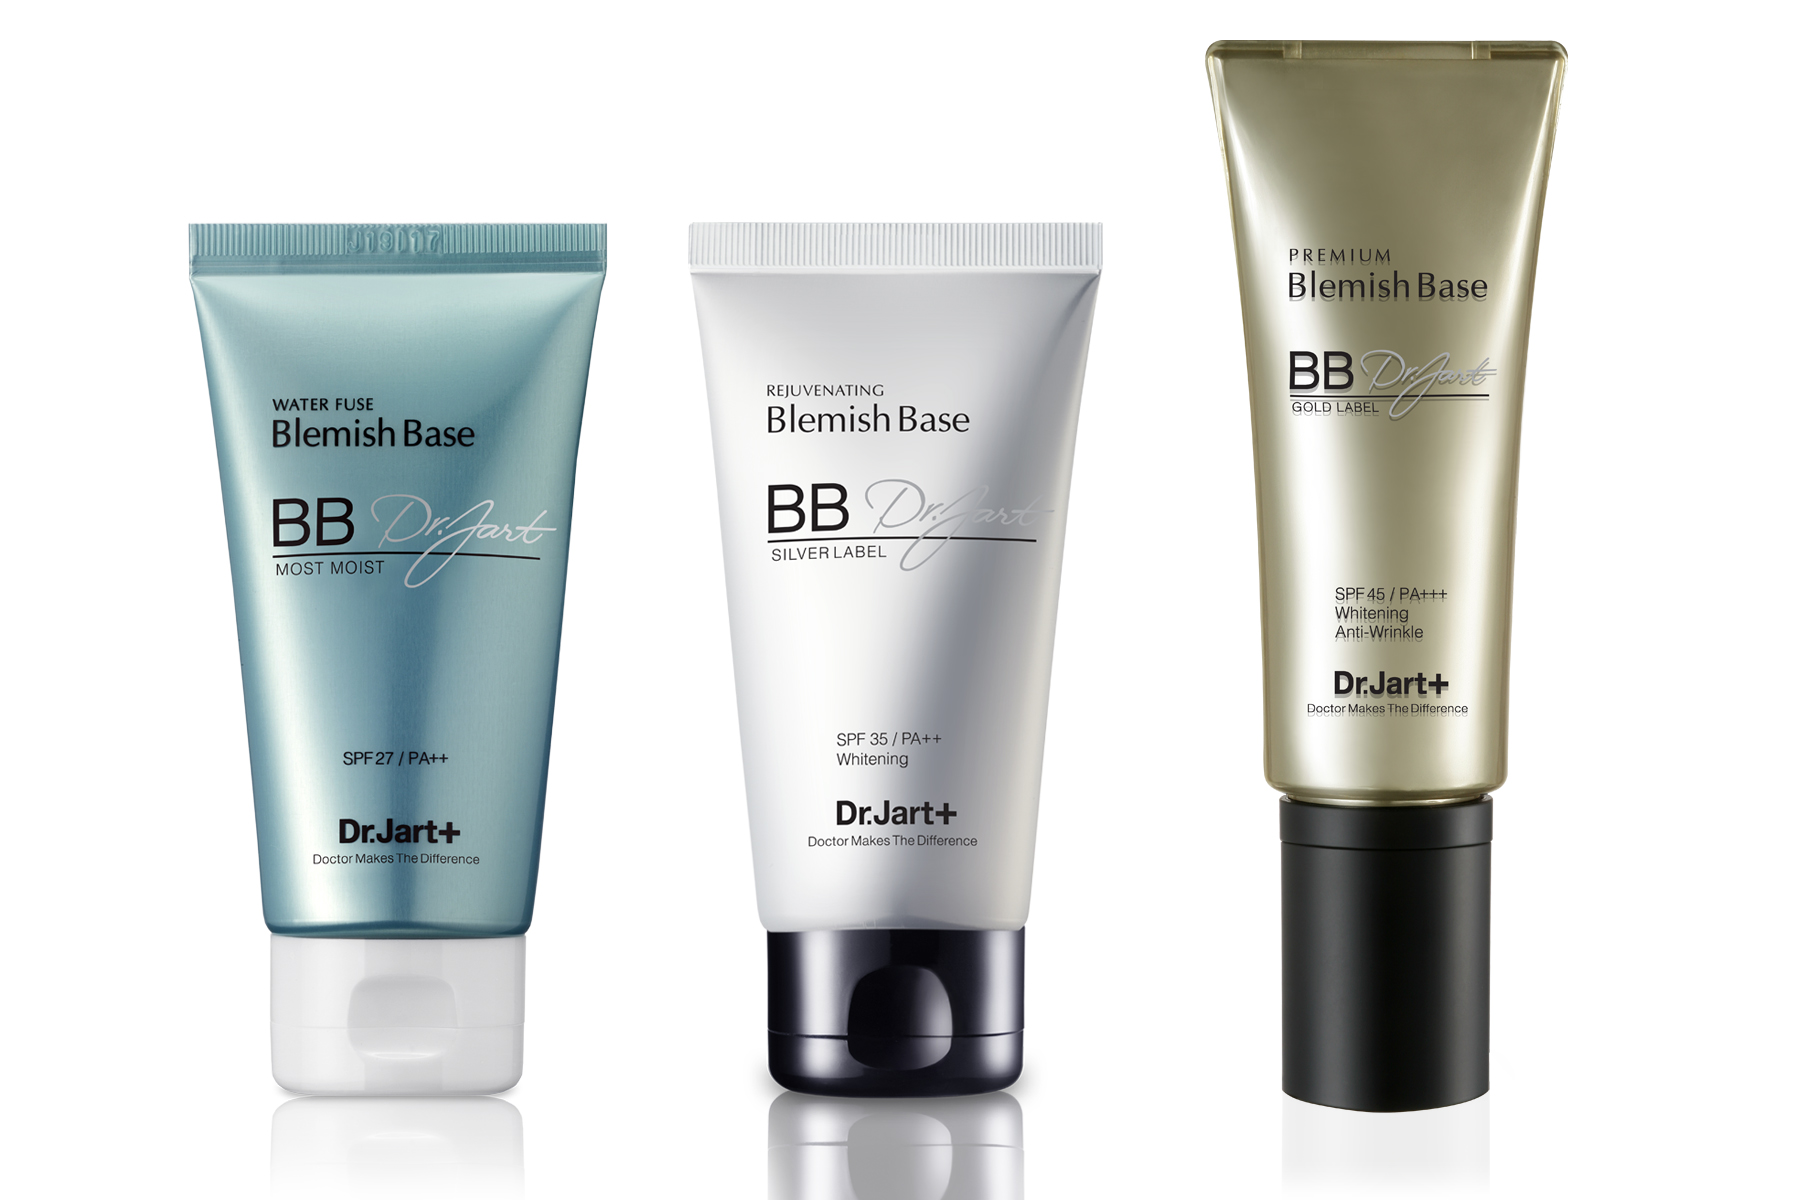 Dr Jart+ BB Cream